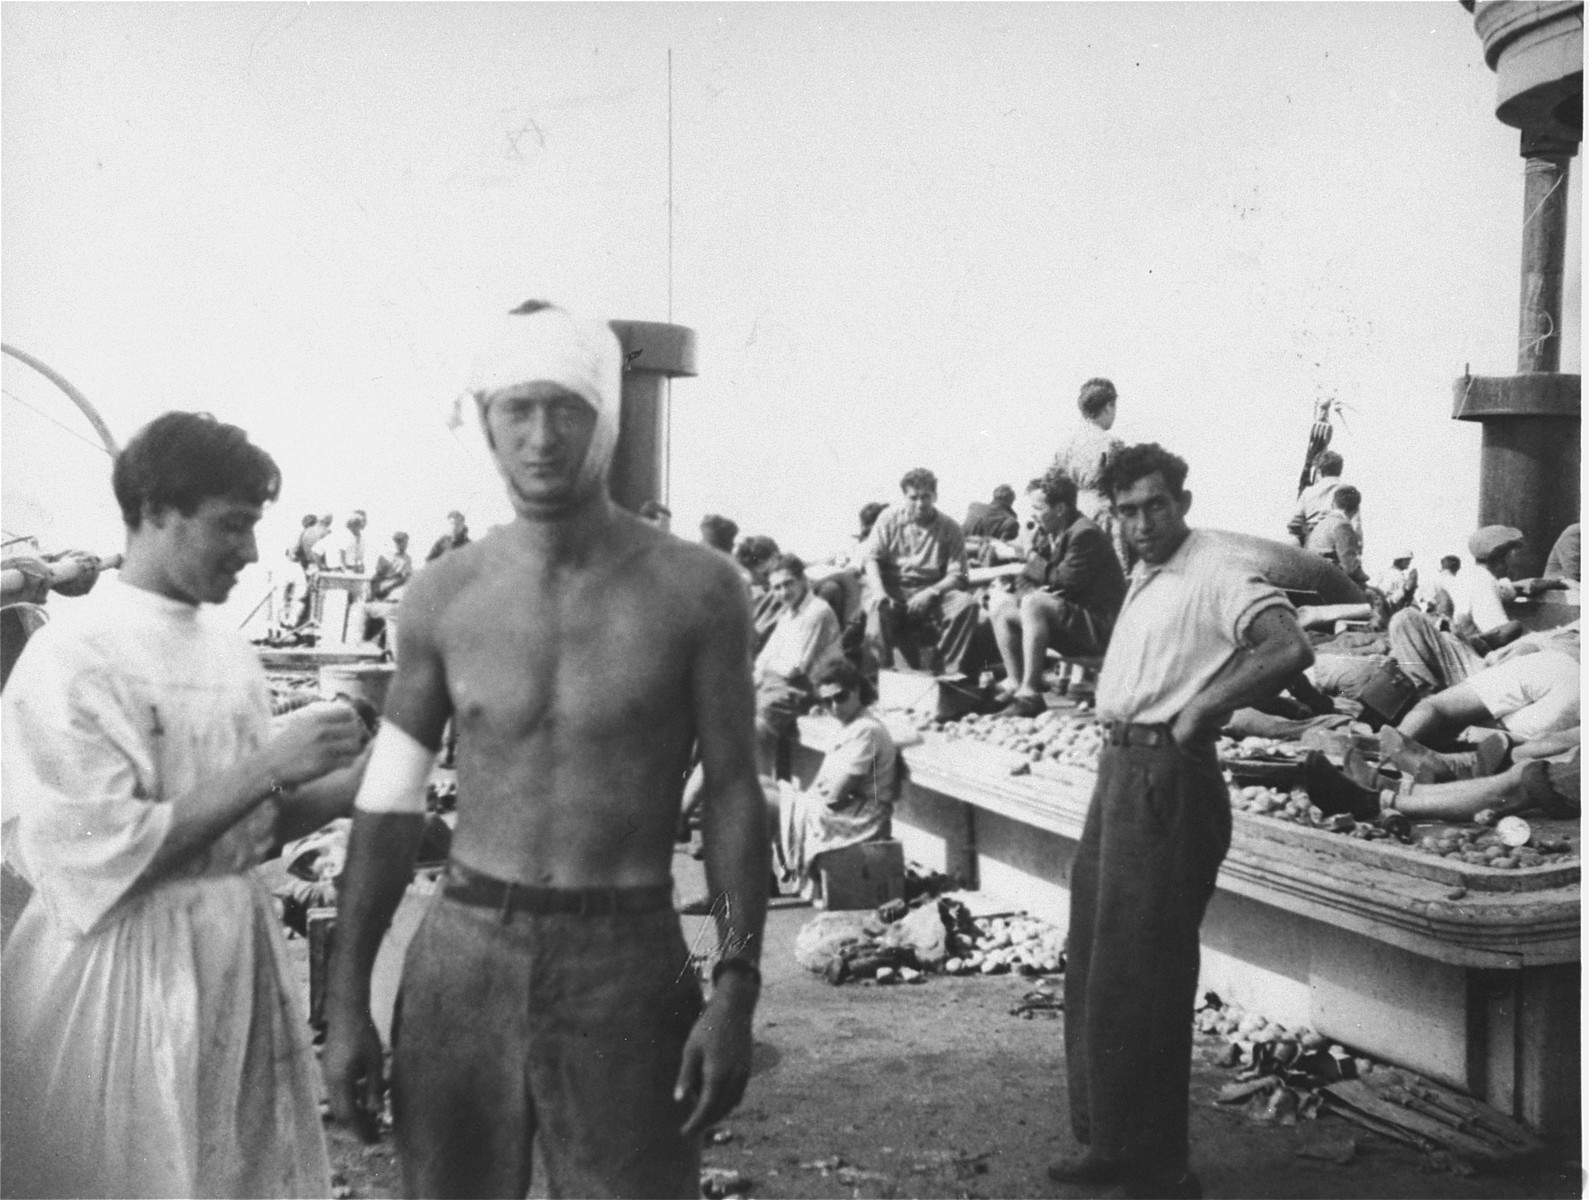 On board the damaged Exodus 1947, a medic applies a bandage to crew member Murray Aronoff, who was wounded the night before, during the struggle with the British.